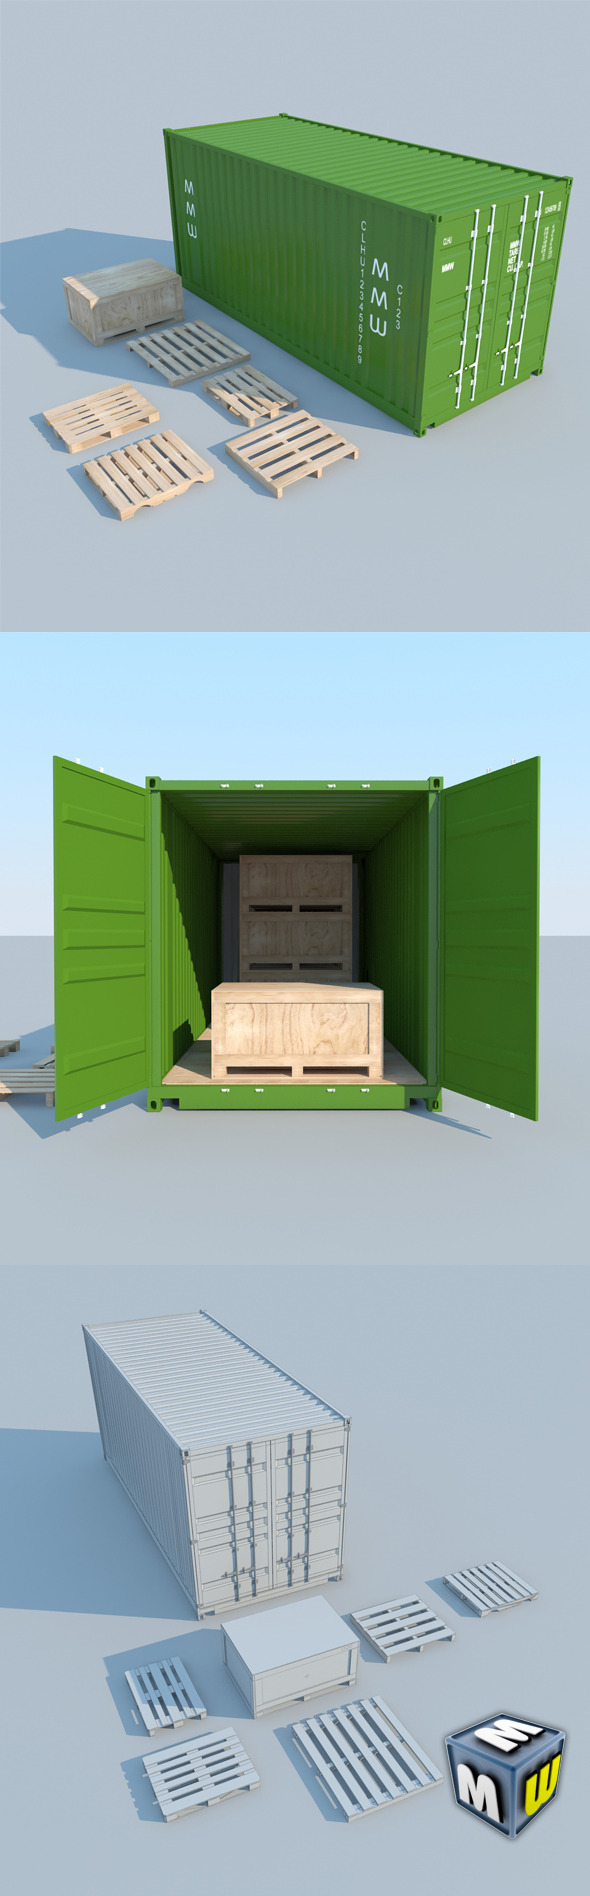 Container MAX 2011 - 3DOcean Item for Sale